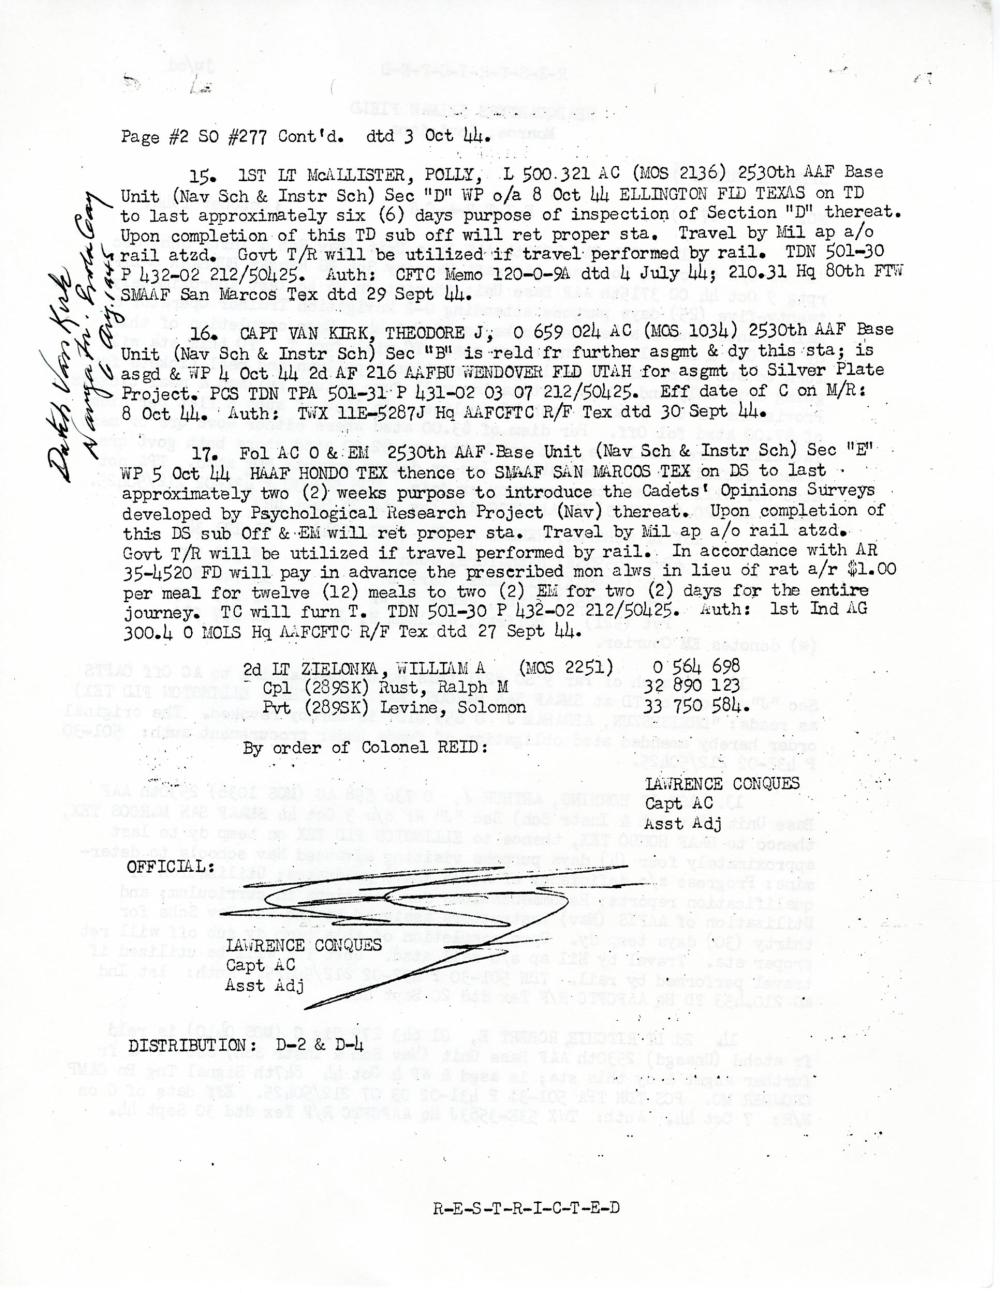 """Enola Gay Navigator Dutch Van Kirk Assigned to """"Silver Plate Project"""""""